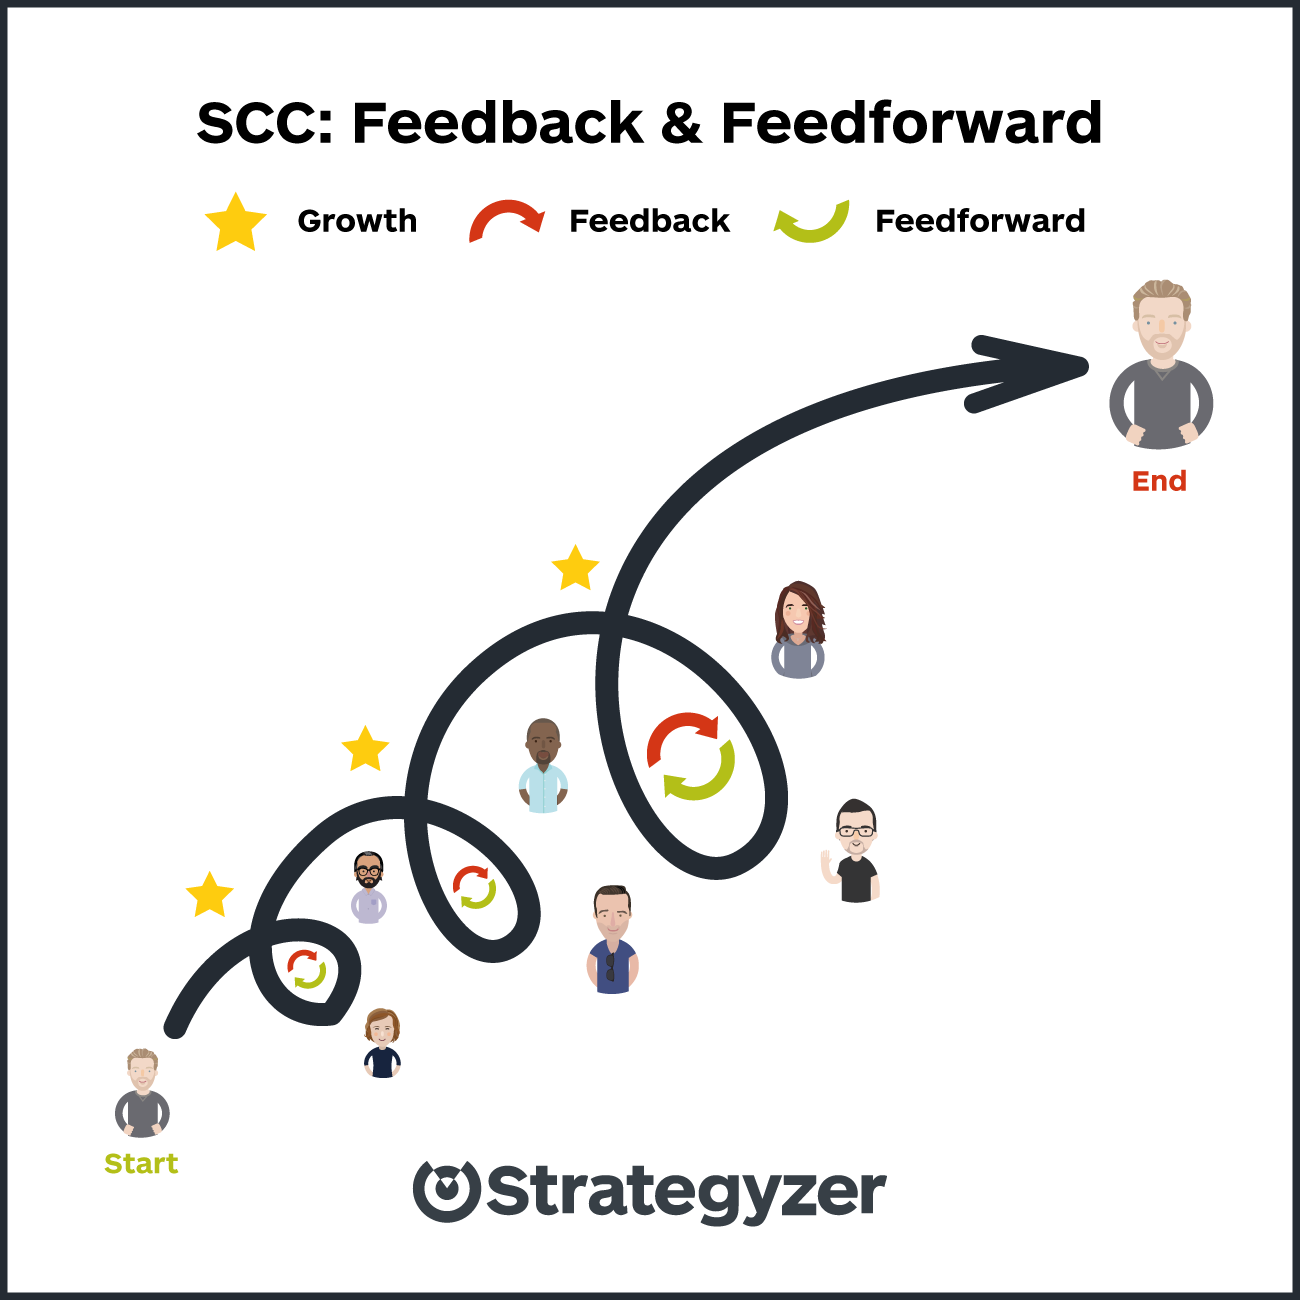 strategyzer-visual-scc-blog-post-continous-growth.png